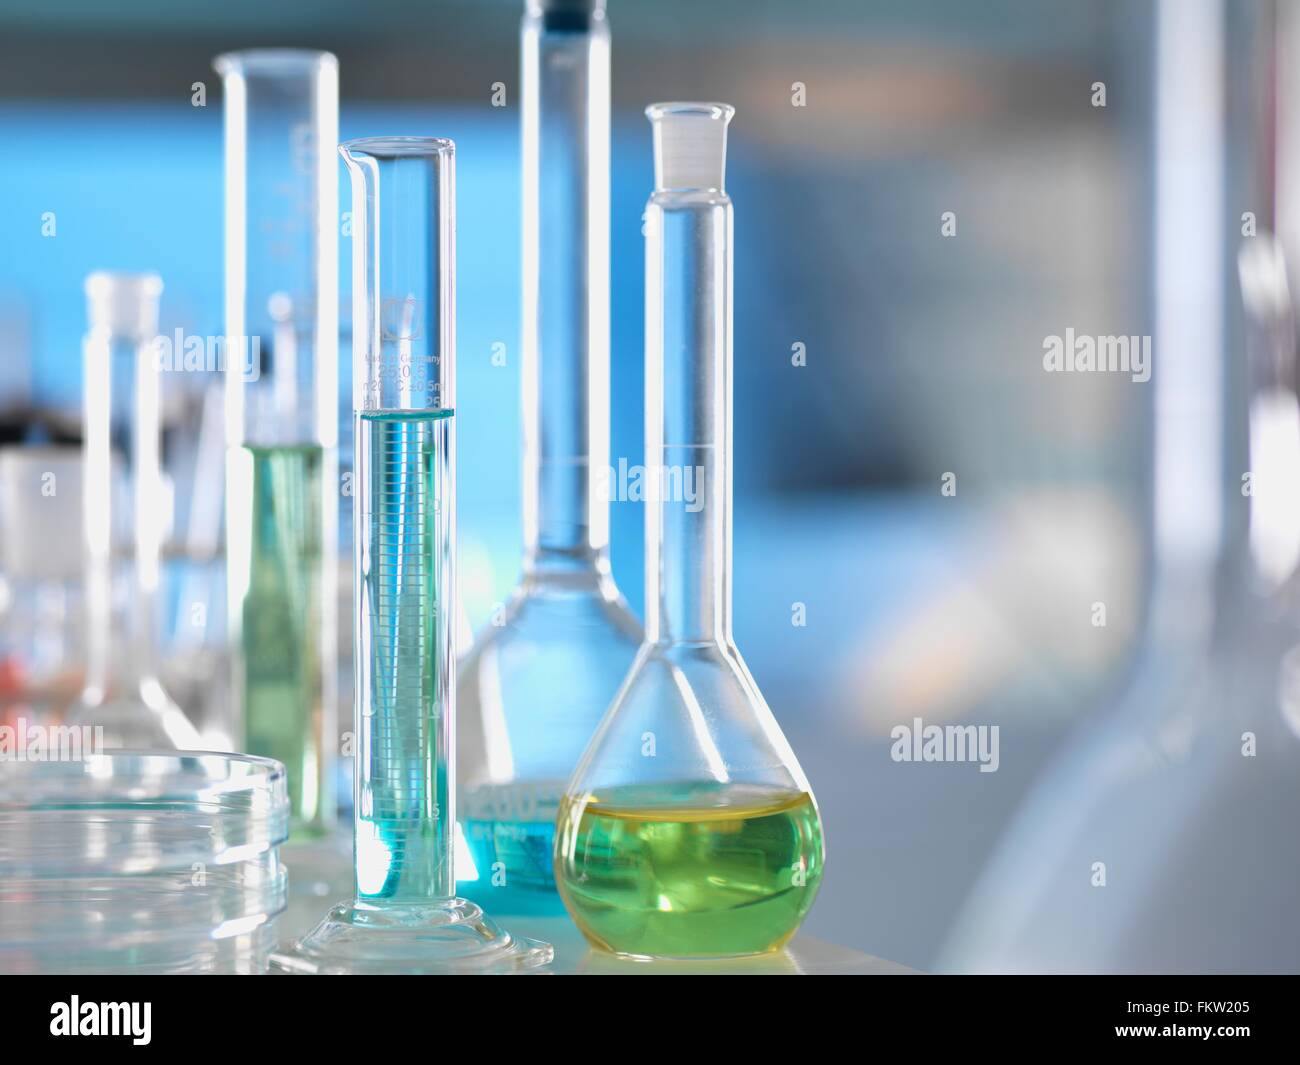 Laboratory glassware on lab bench during experiment - Stock Image